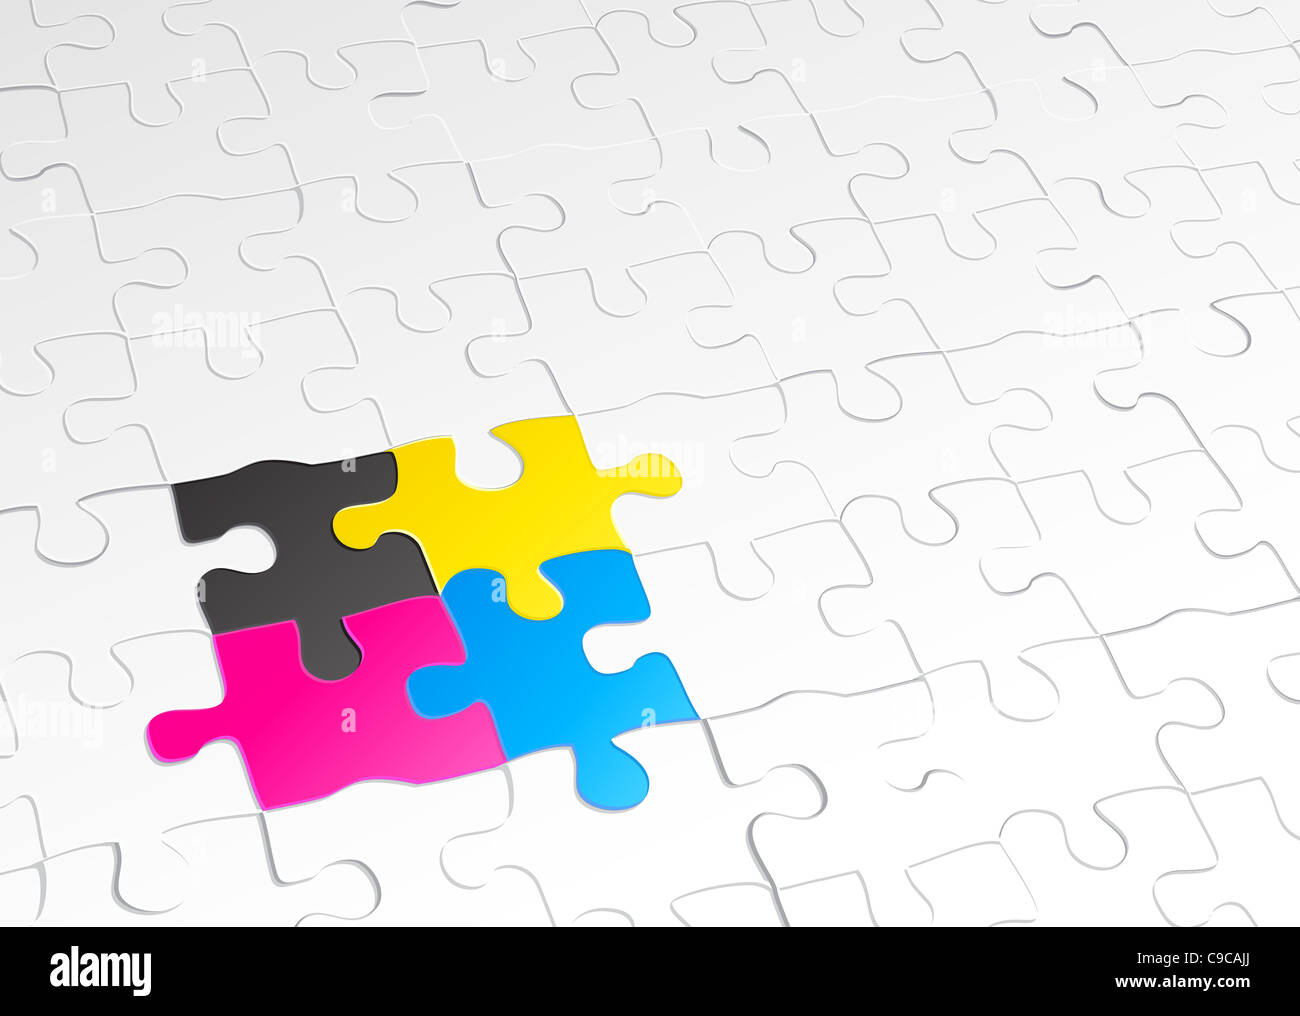 illustration of abstract background made of jigsaw puzzle templates ...